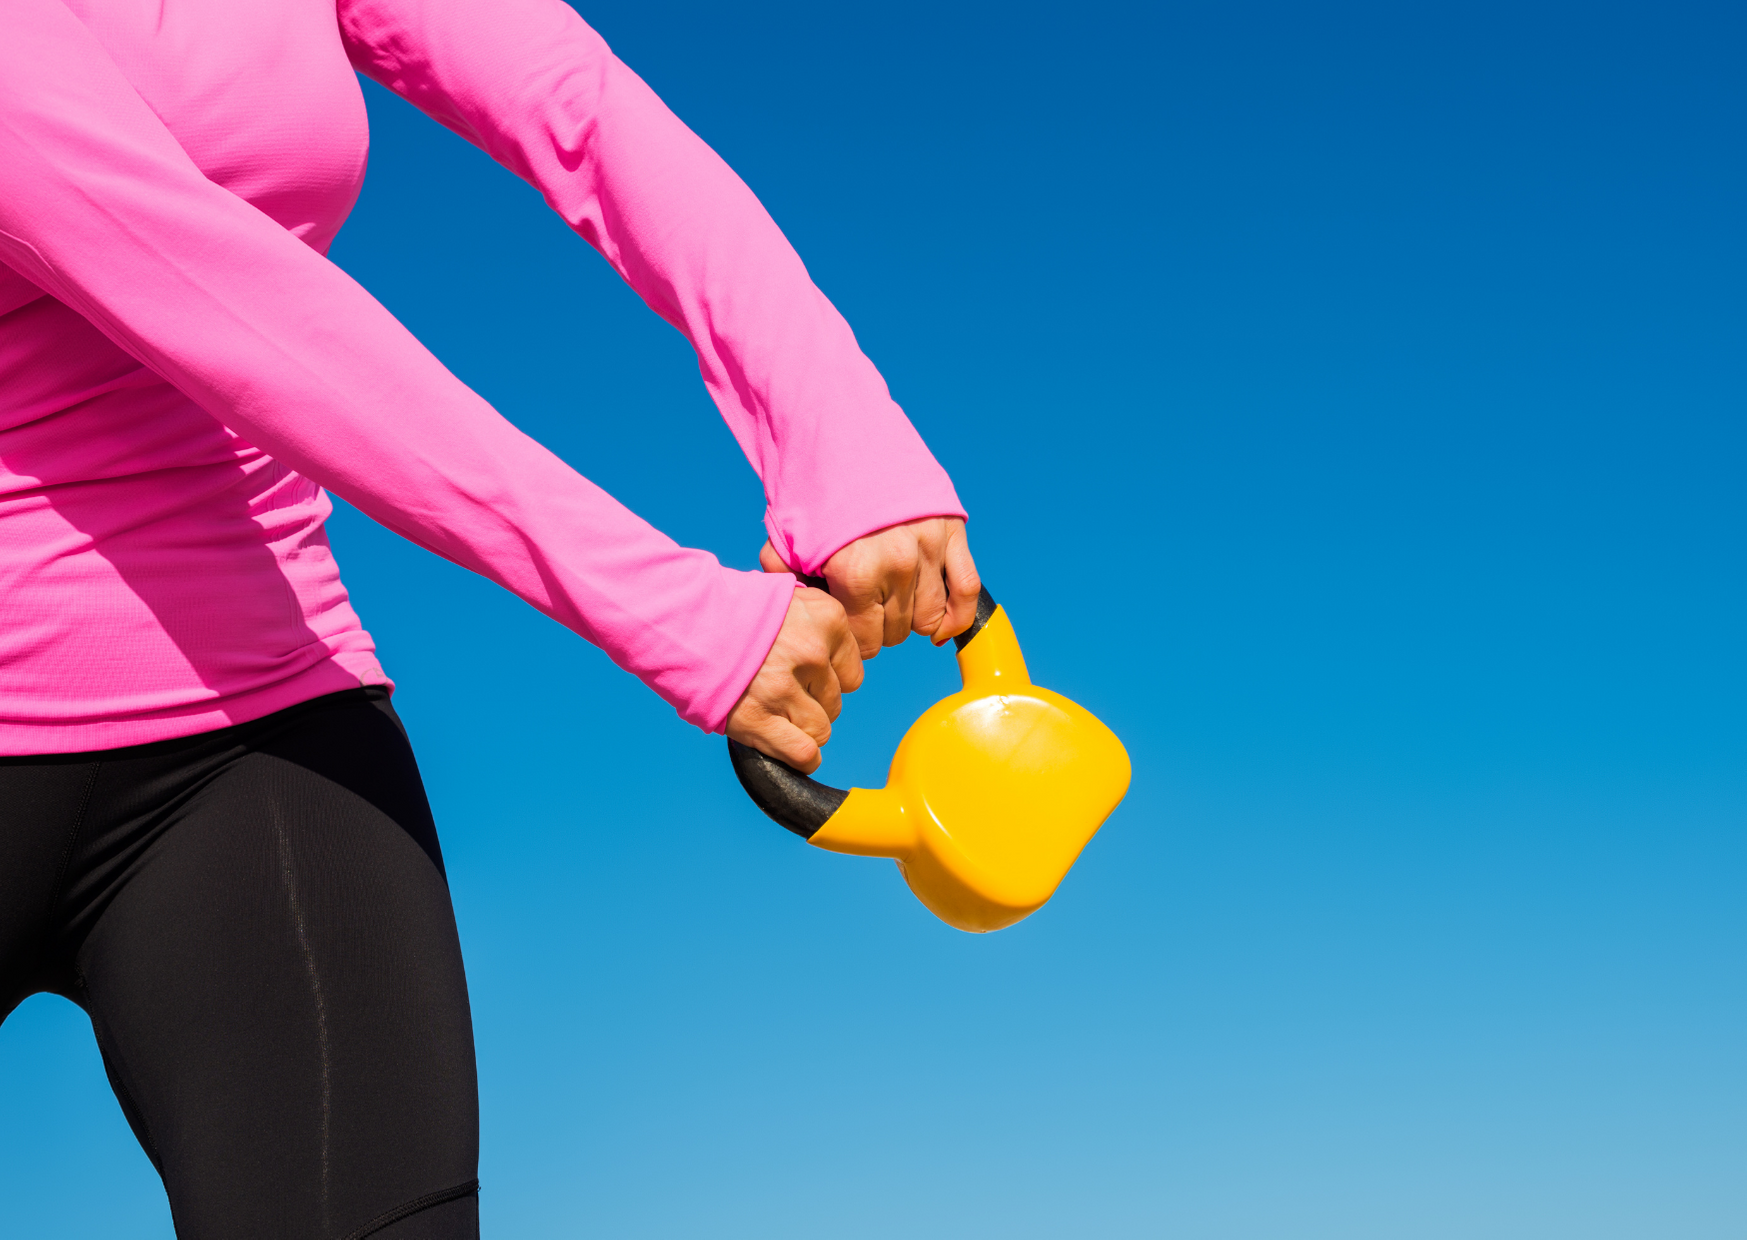 a woman wearing pink holding a yellow kettle bell